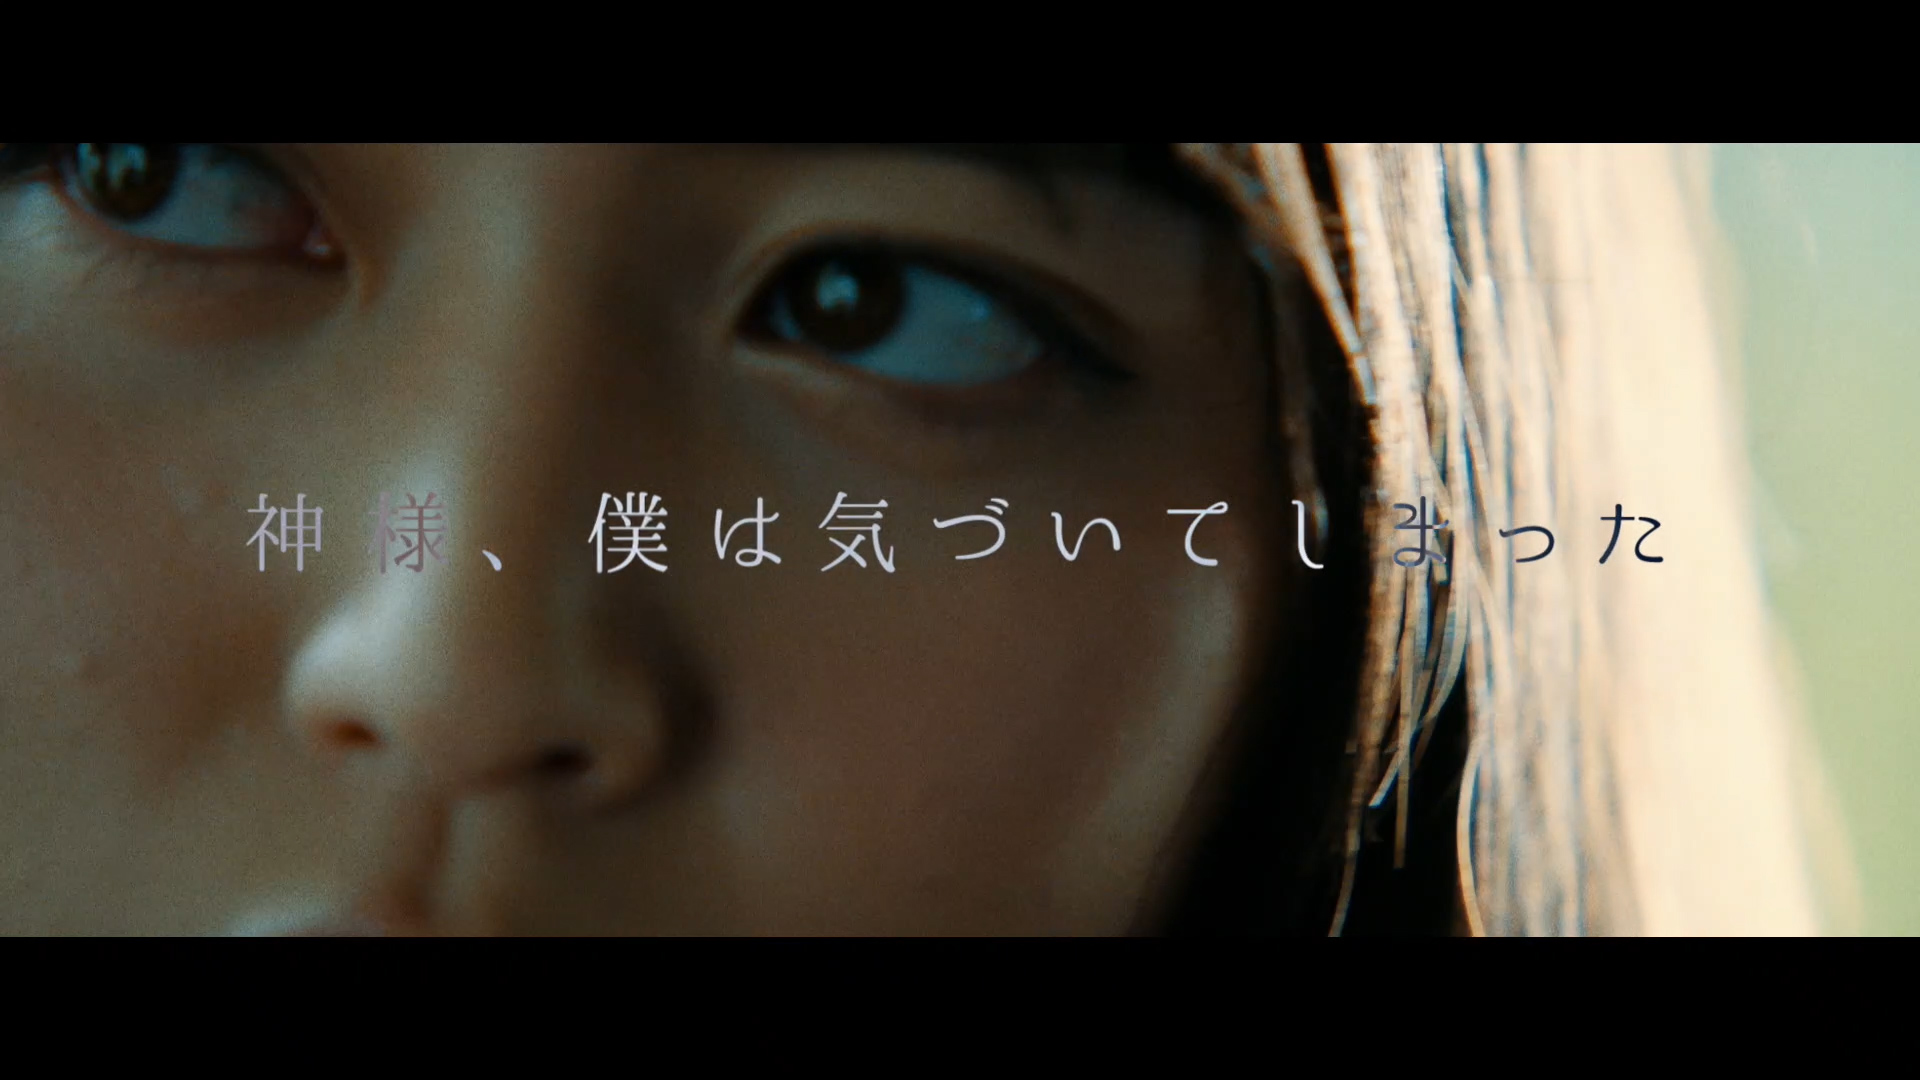 Warner Music Japan Inc.<br>神様、僕は気づいてしまった「わたしの命を抉ってみせて」